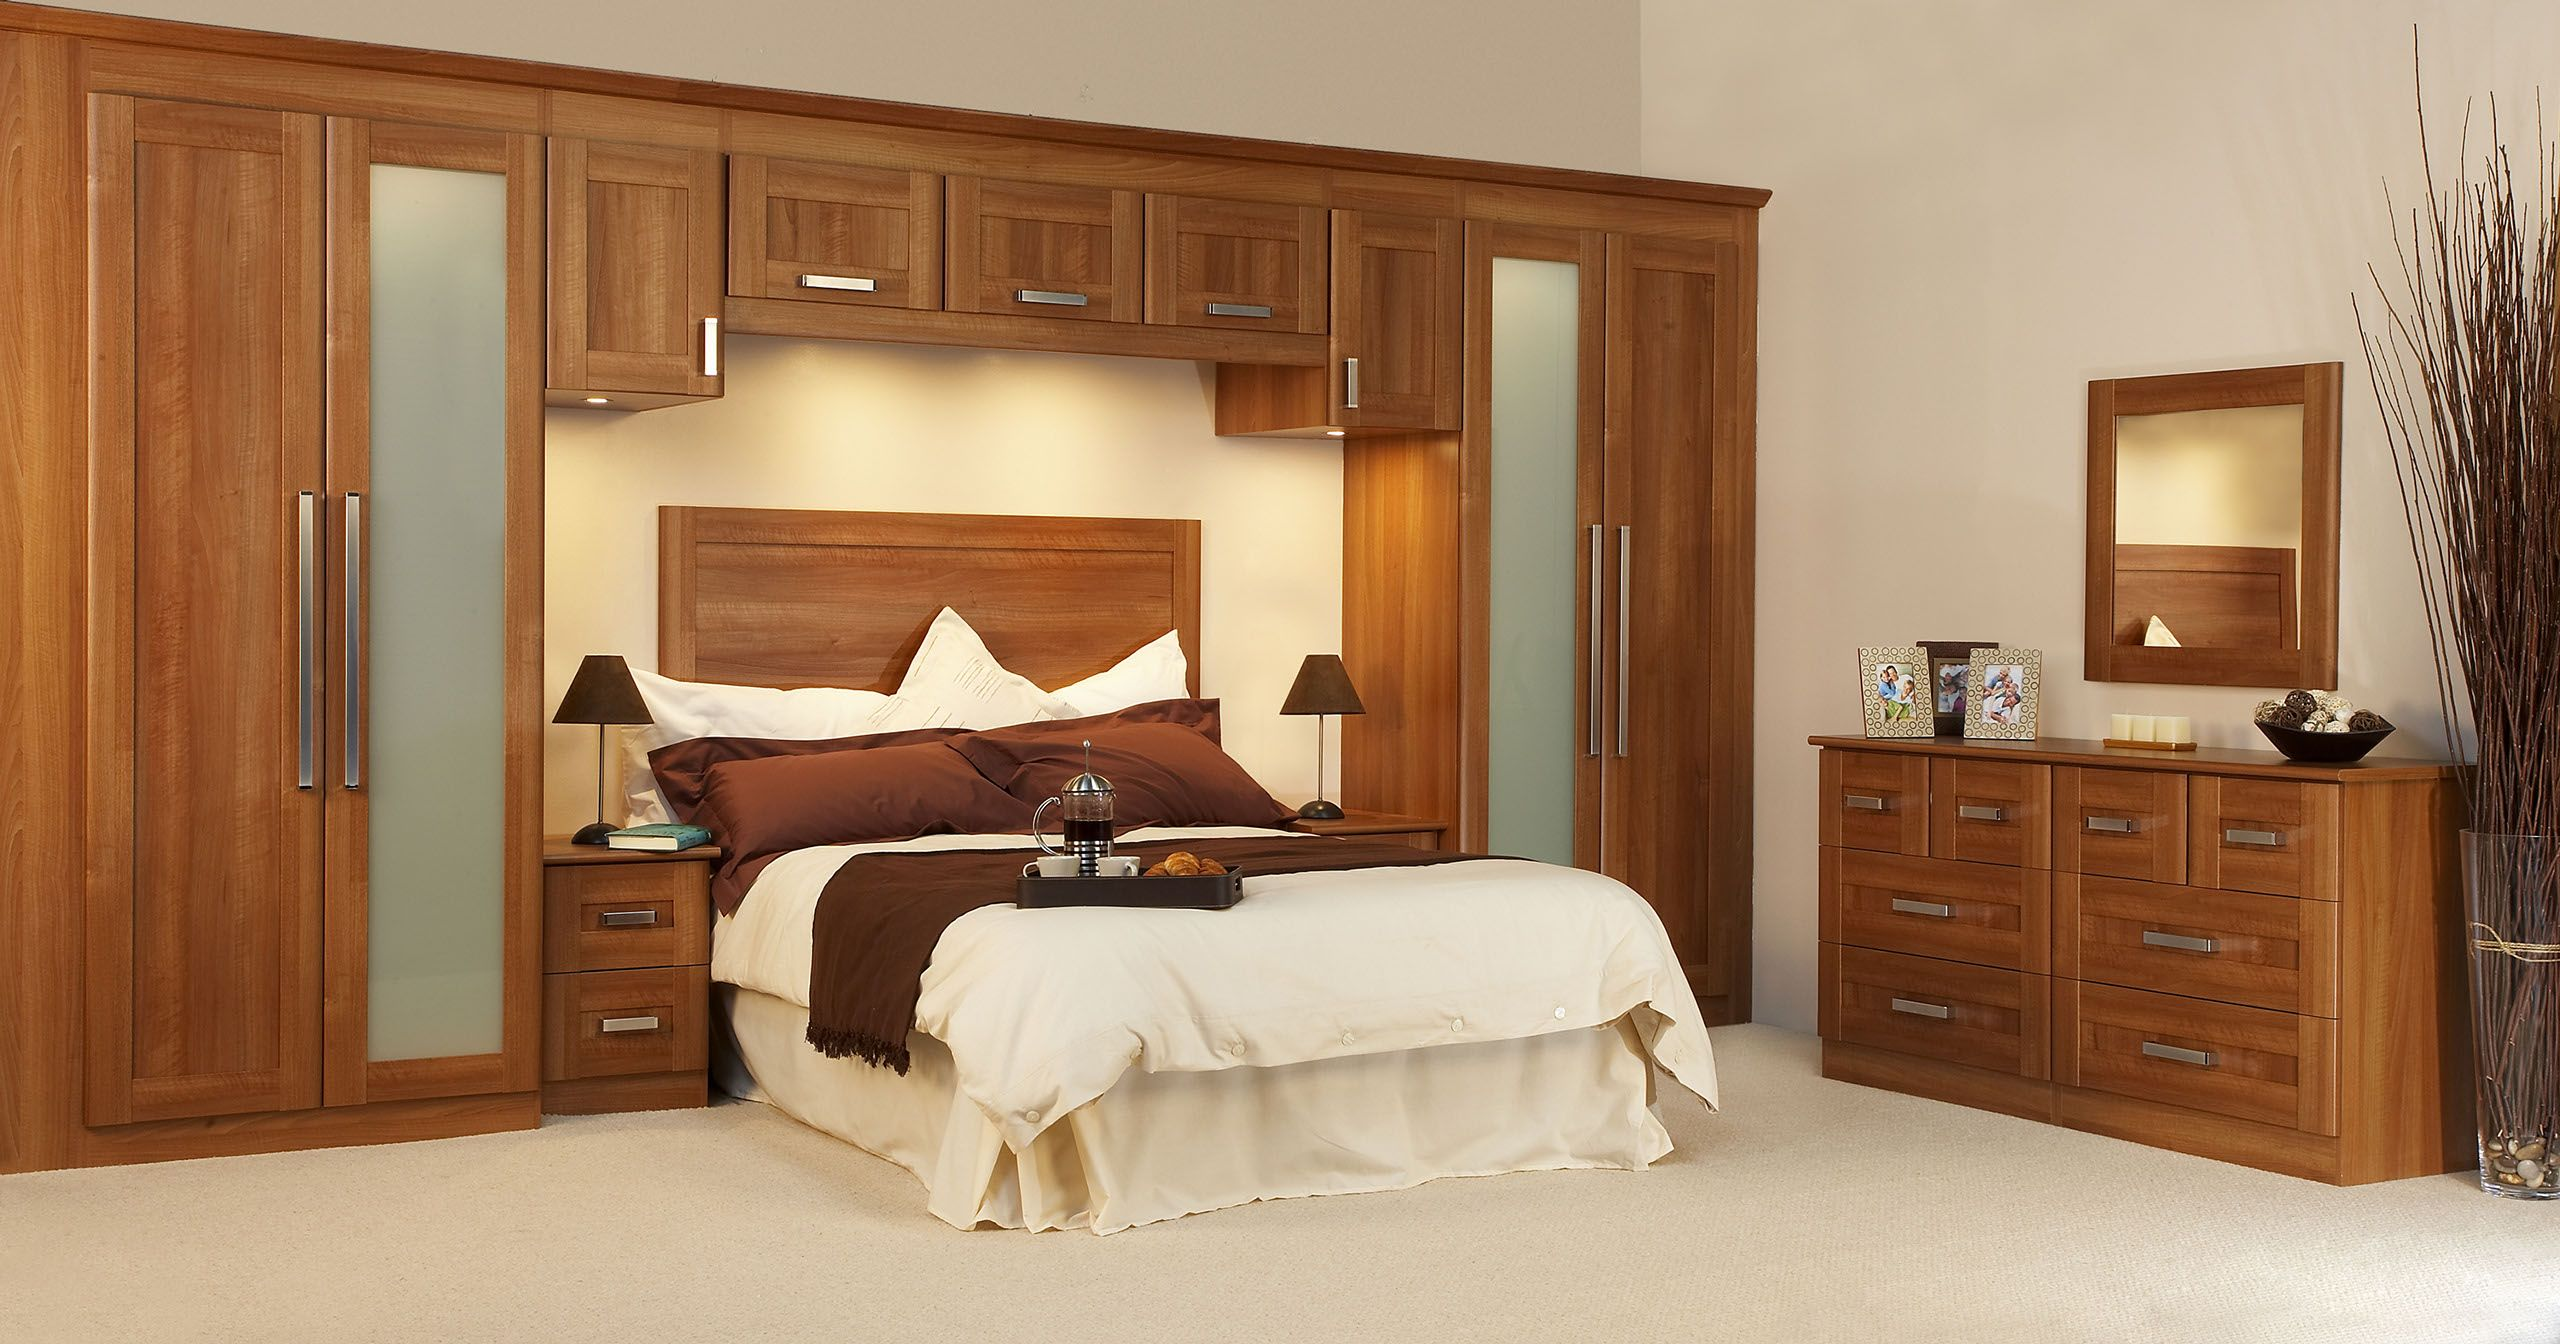 Built In Bedroom Furniture Designs Sharps Fitted Bedrooms  Google Search  Idea  Pinterest  Fitted